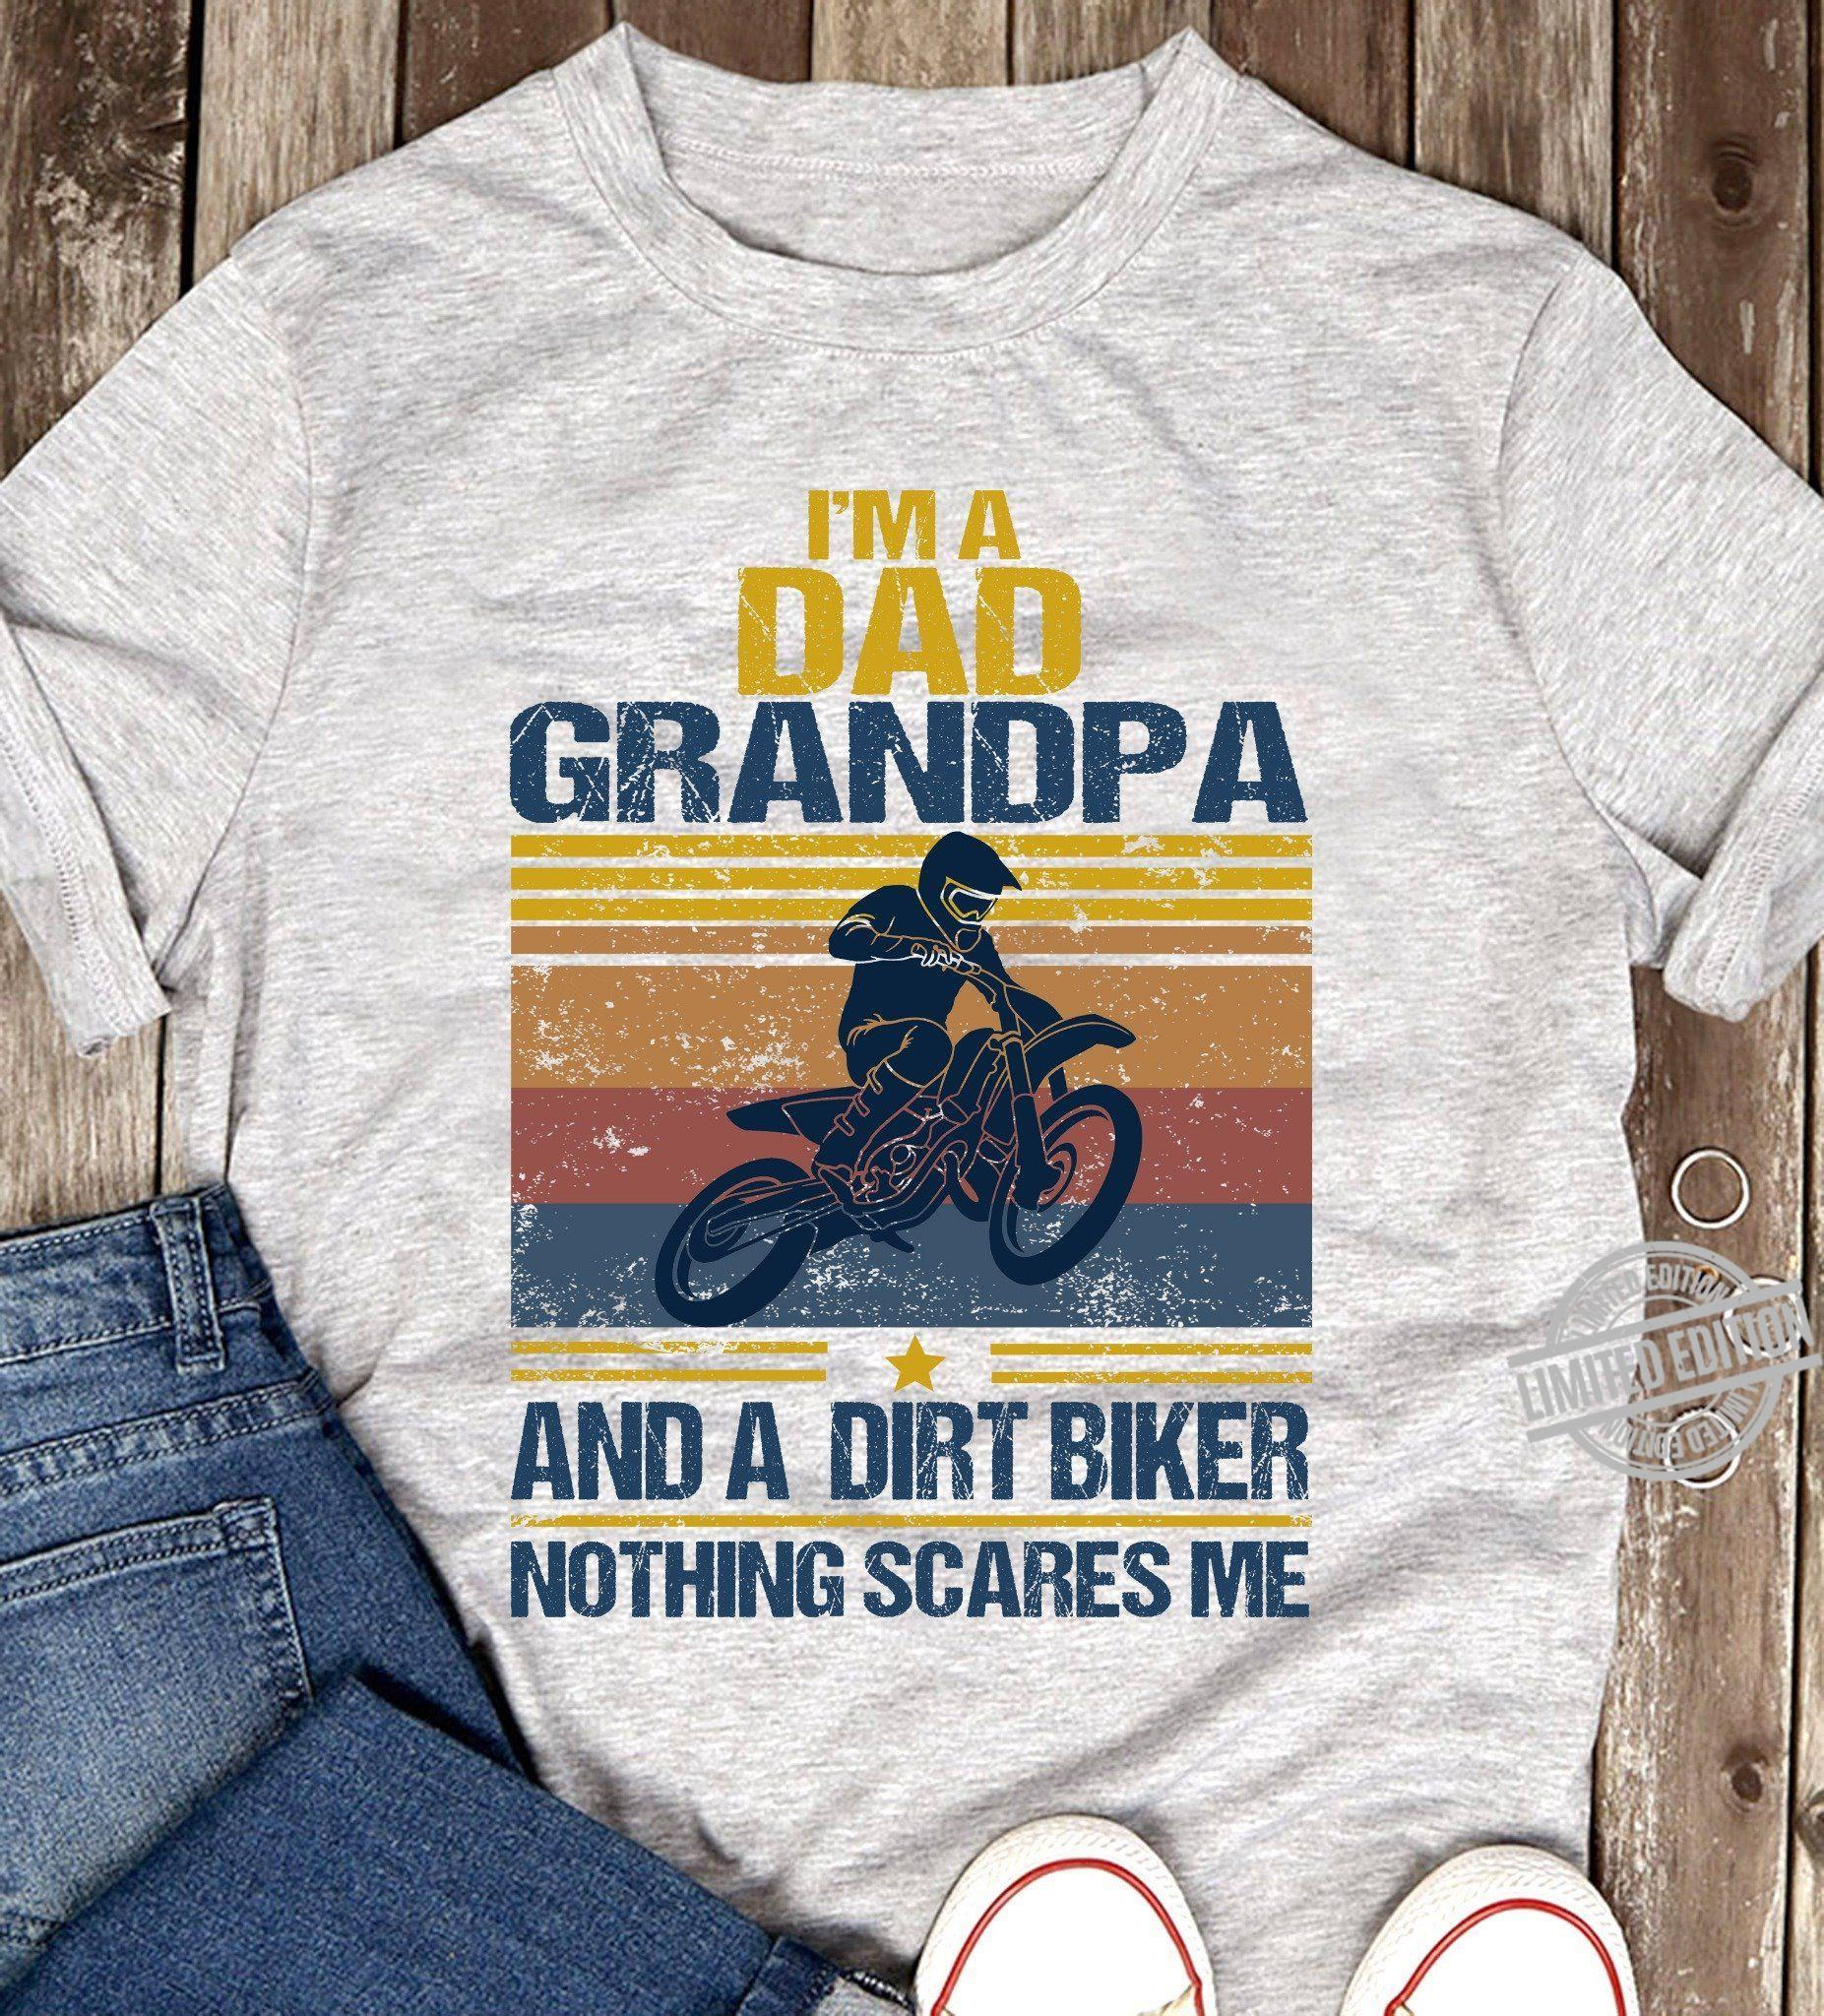 I'm A Dad Grandpa And A Dirt Biker Nothing Scares Me Shirt